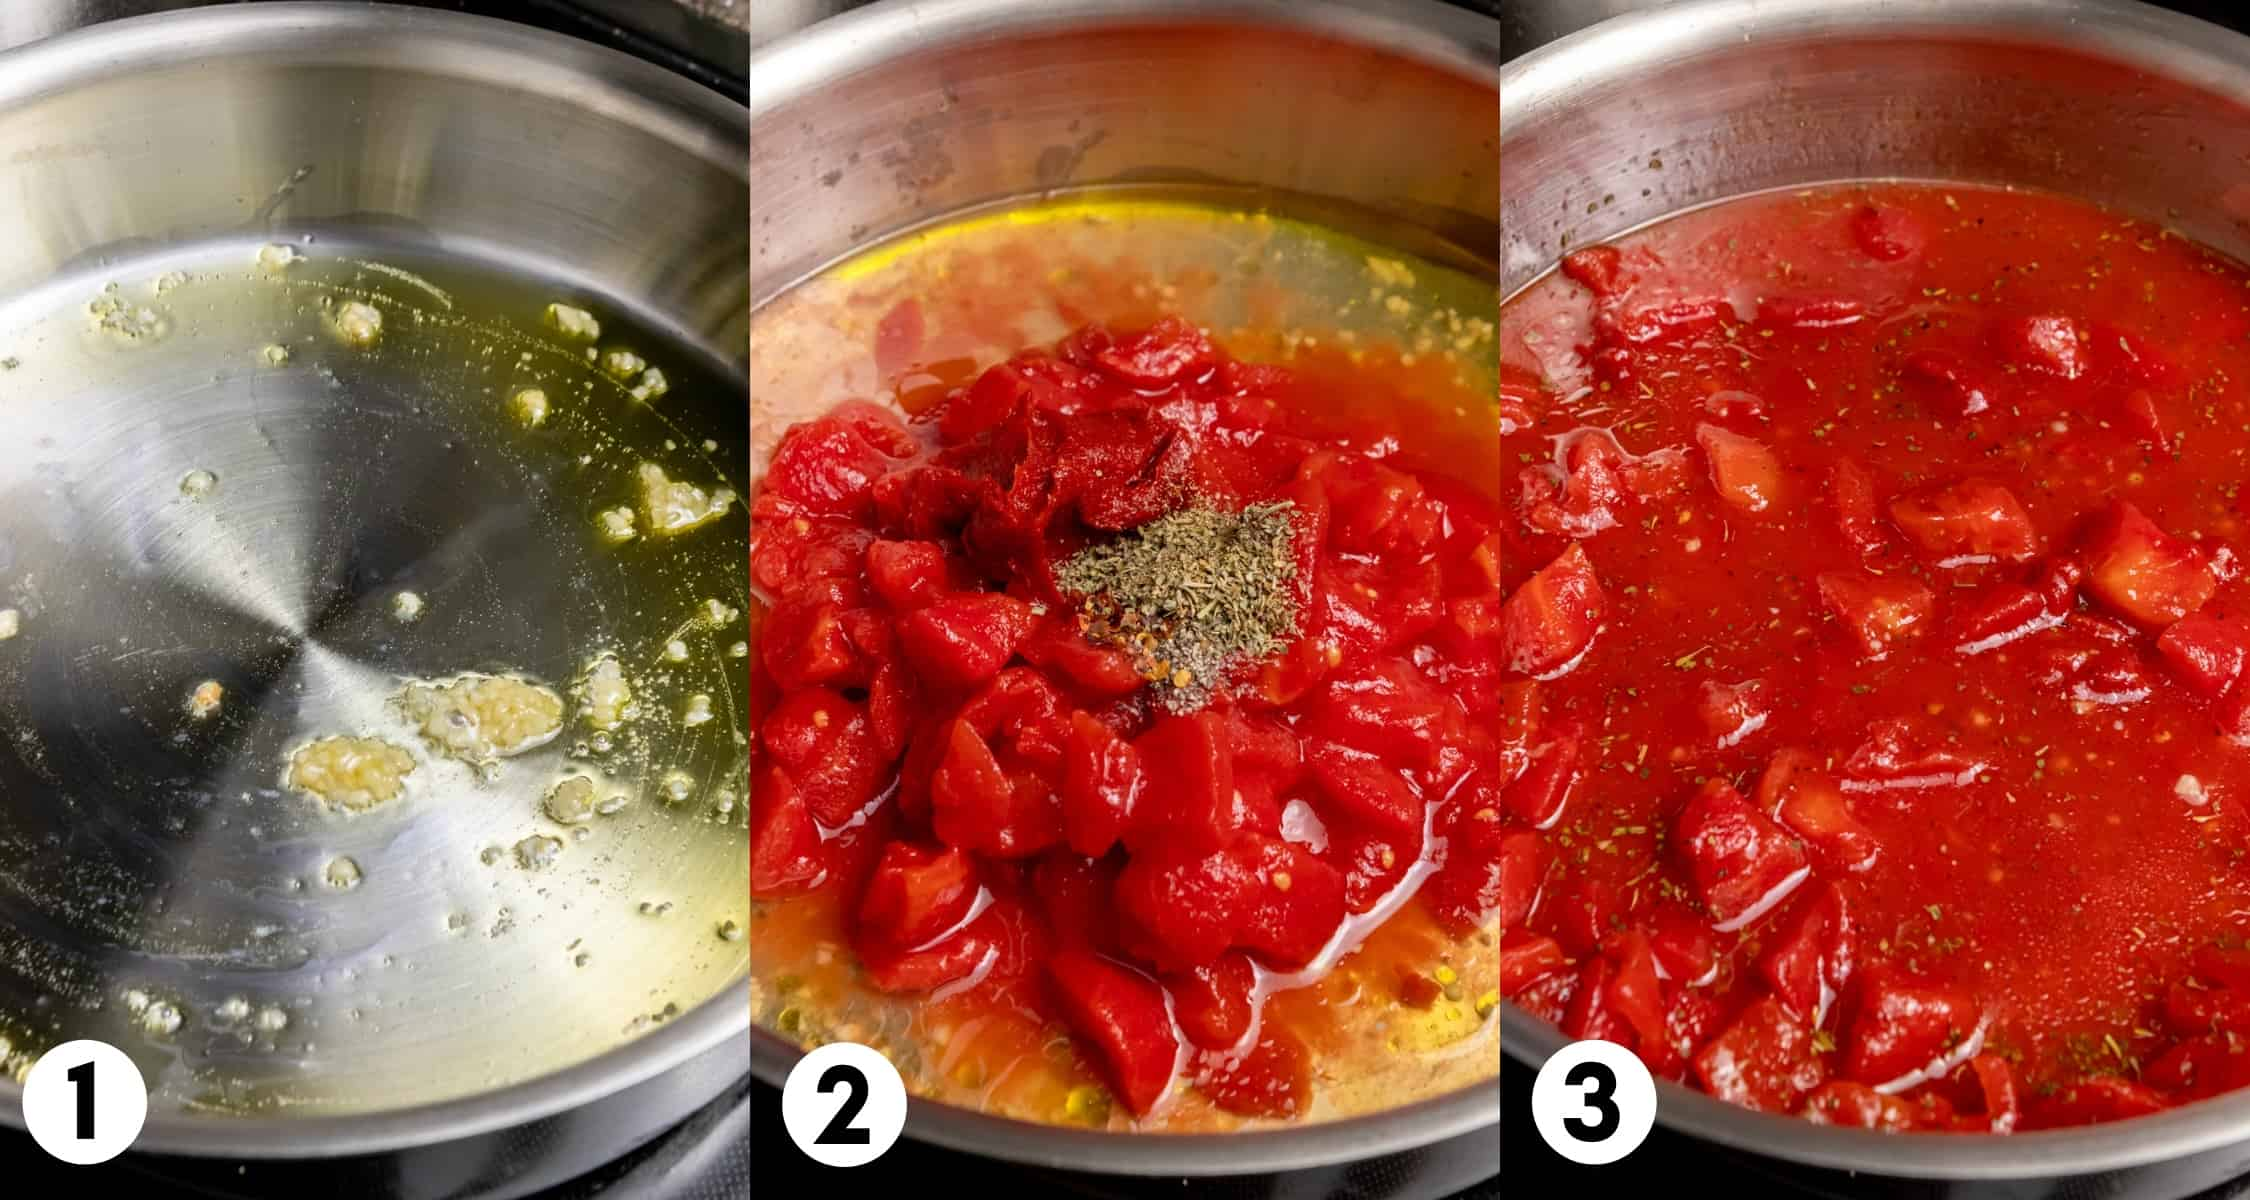 Garlic in olive oil and tomatoes with spices.